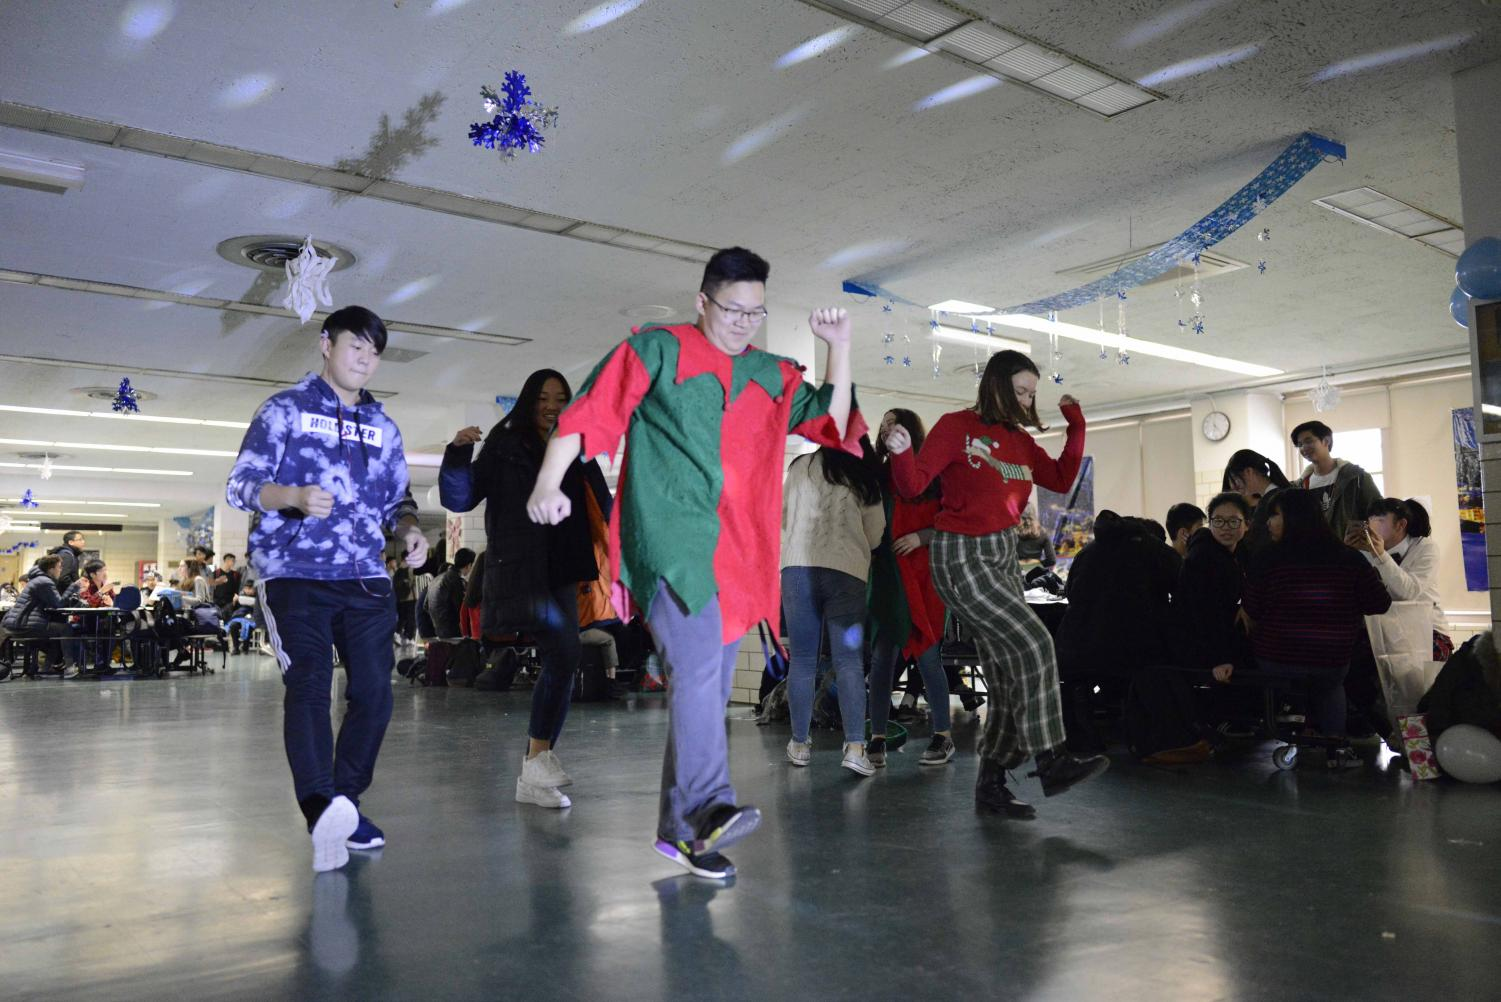 Students get on the dance floor and perform a dance routine during the Winter Wonderland festivities.